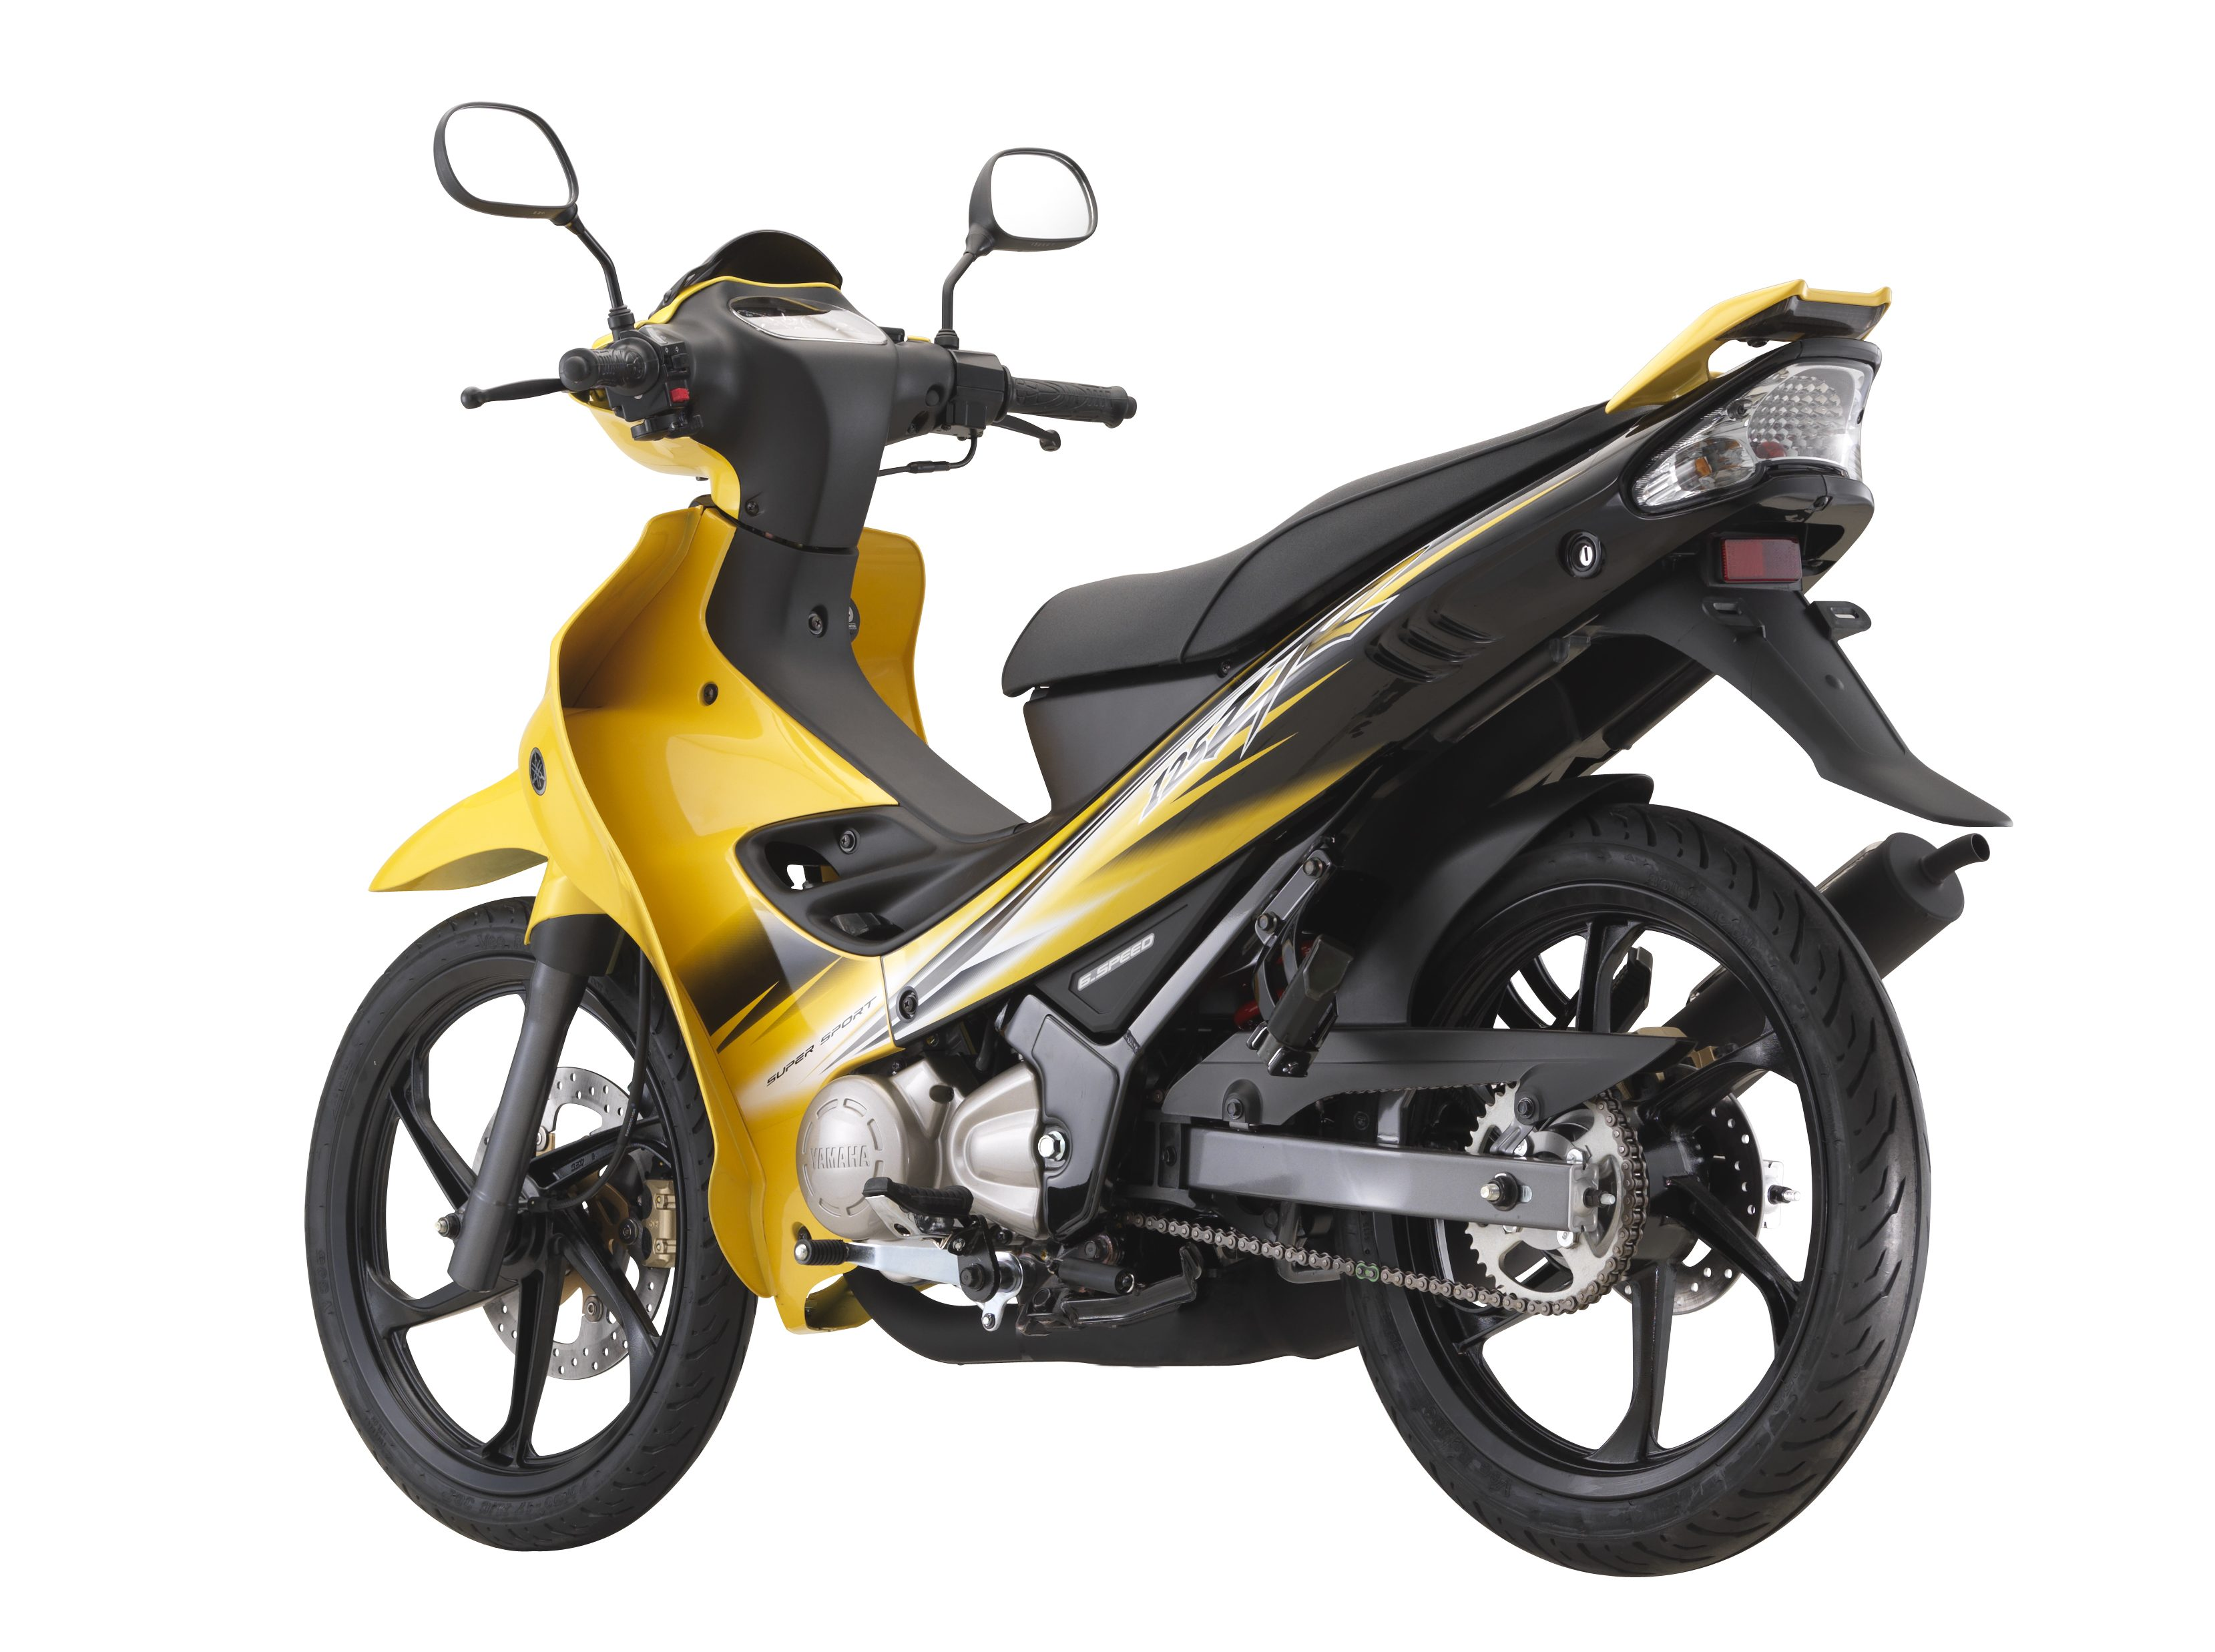 2016 yamaha 125zr now in yellow colour rm7 269 image 486191 for Yamaha policy